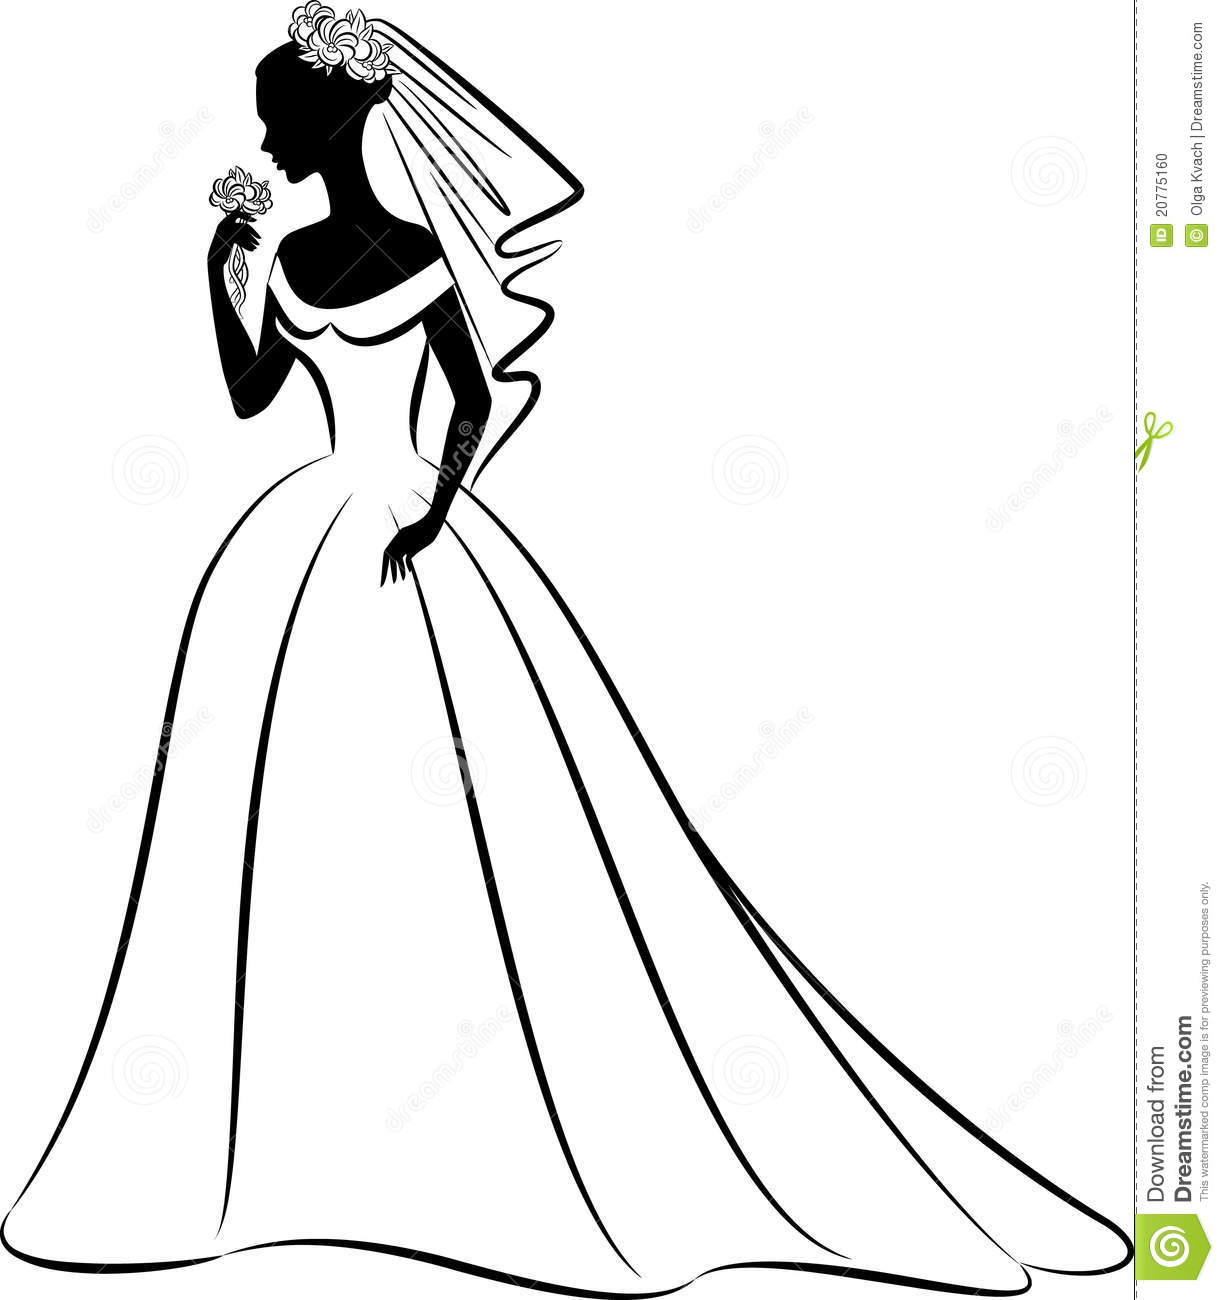 Vintage Wedding Dress Clipart Wedding Dress Clipart Outline Silhouette